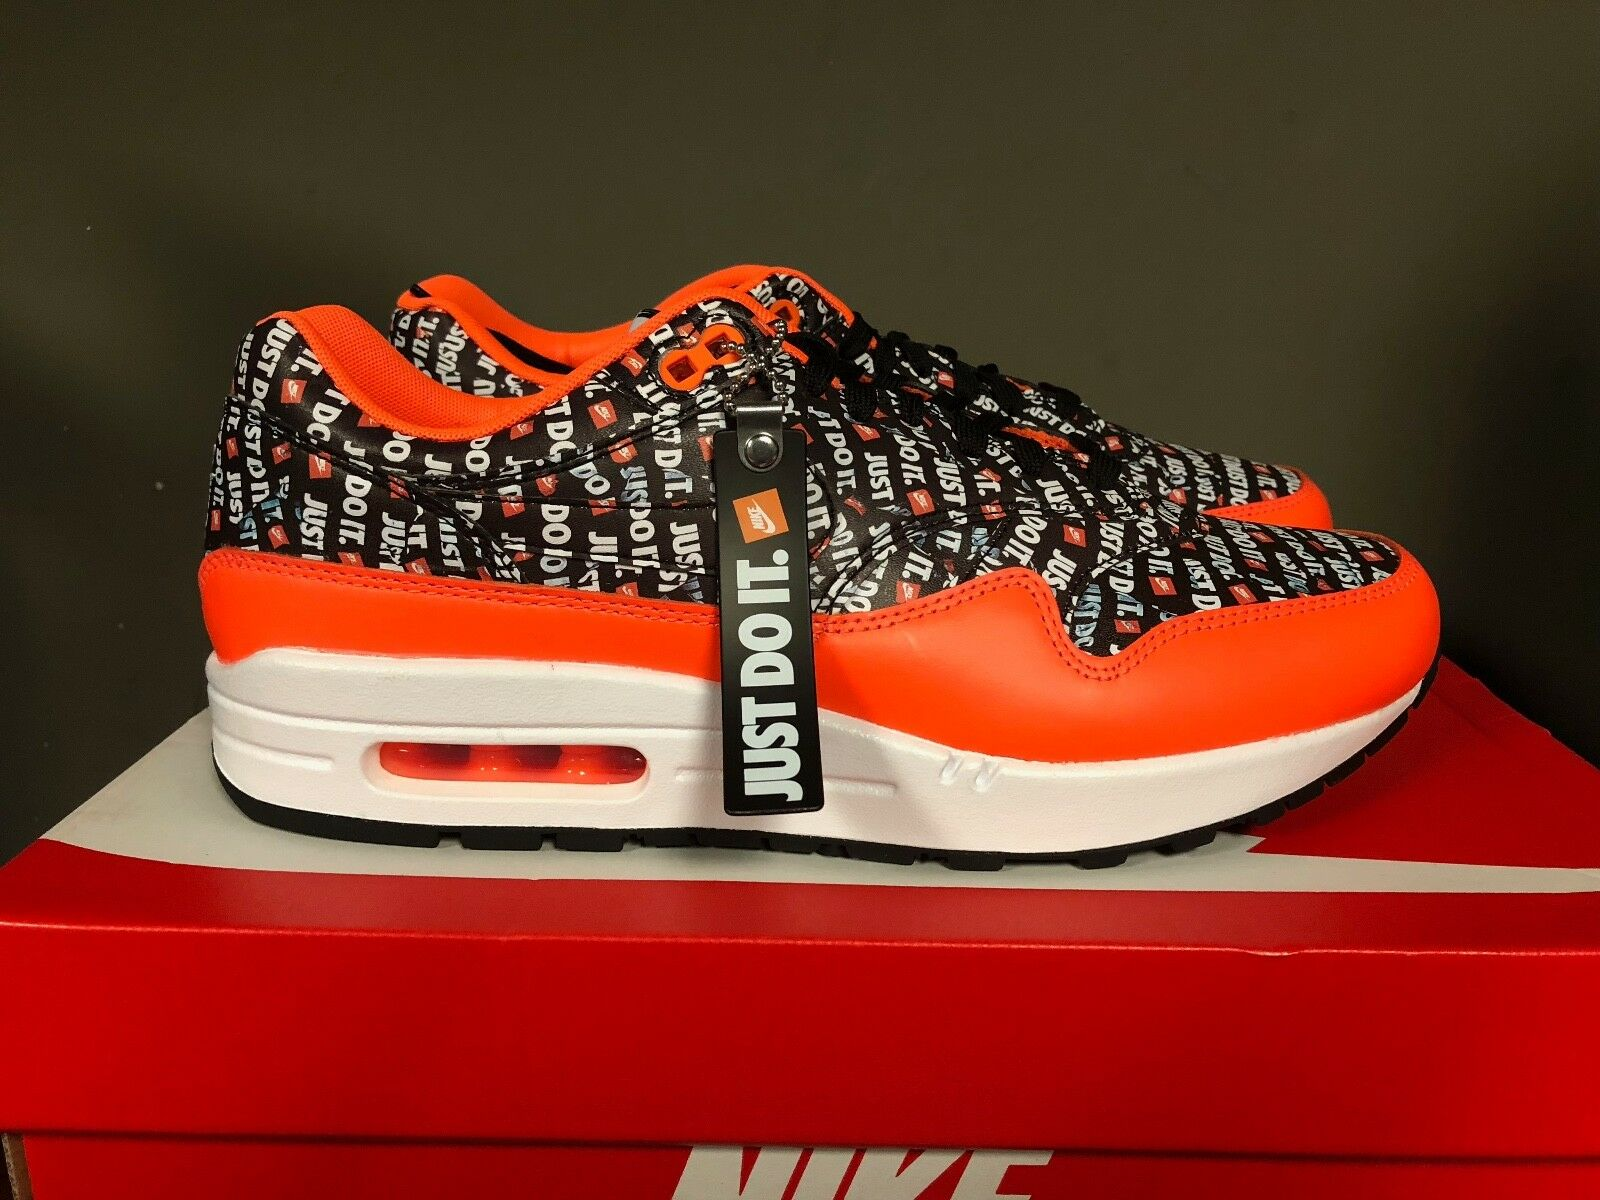 Uomini e mike air max nero-total 1 premio nero / nero-total max orange-white 875844-008 nuovo 2018 2189c9